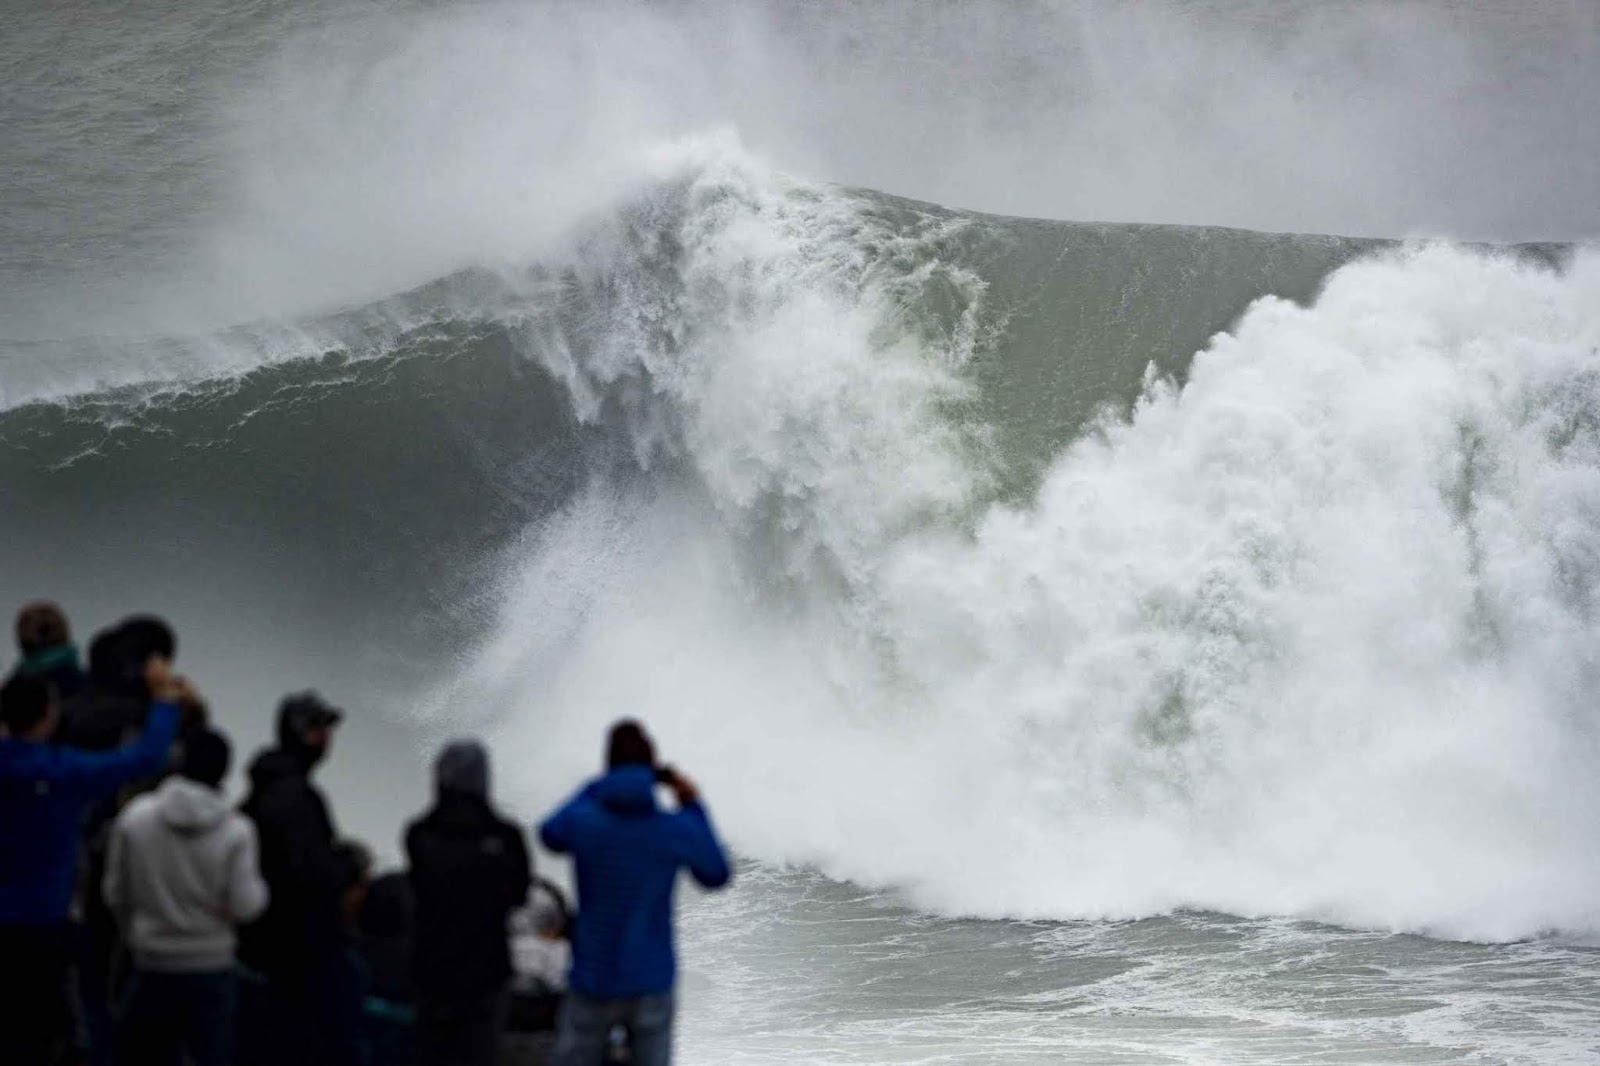 nazare tow in challenge wave0126nazare20poullenot